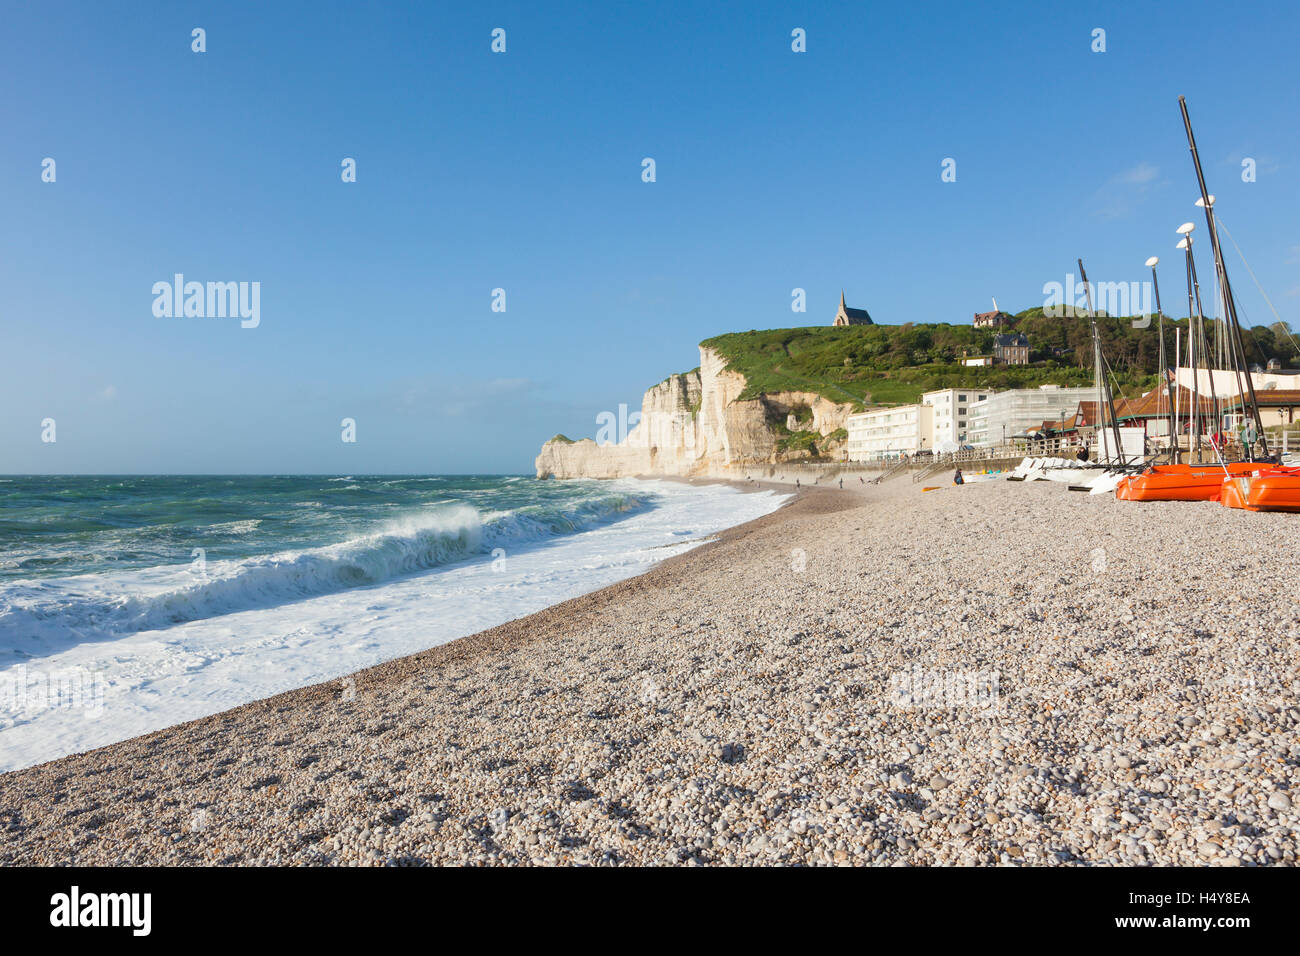 Beach and cliff at Etretat, Normandy, France - Stock Image